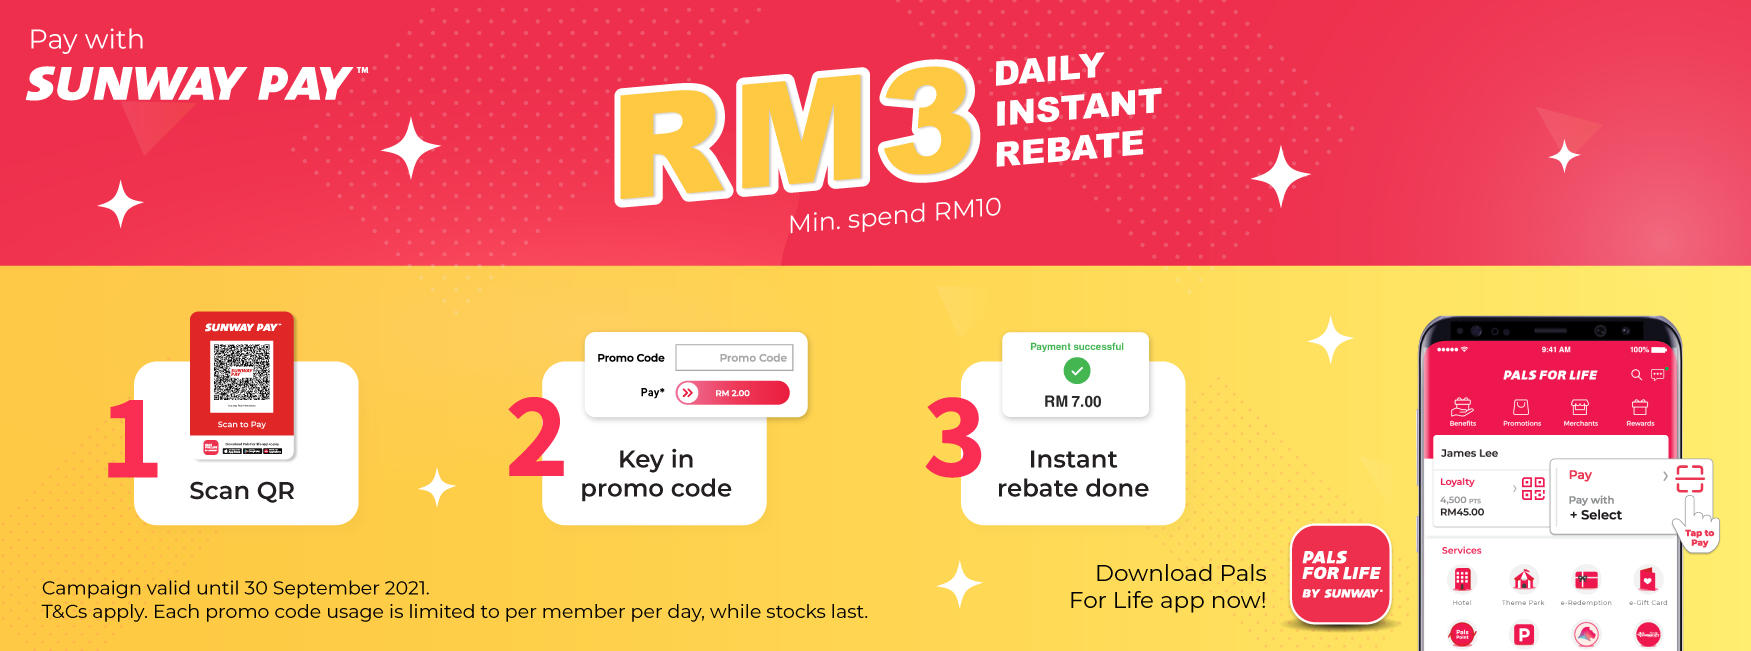 RM 3 Sunway Pay Campaign